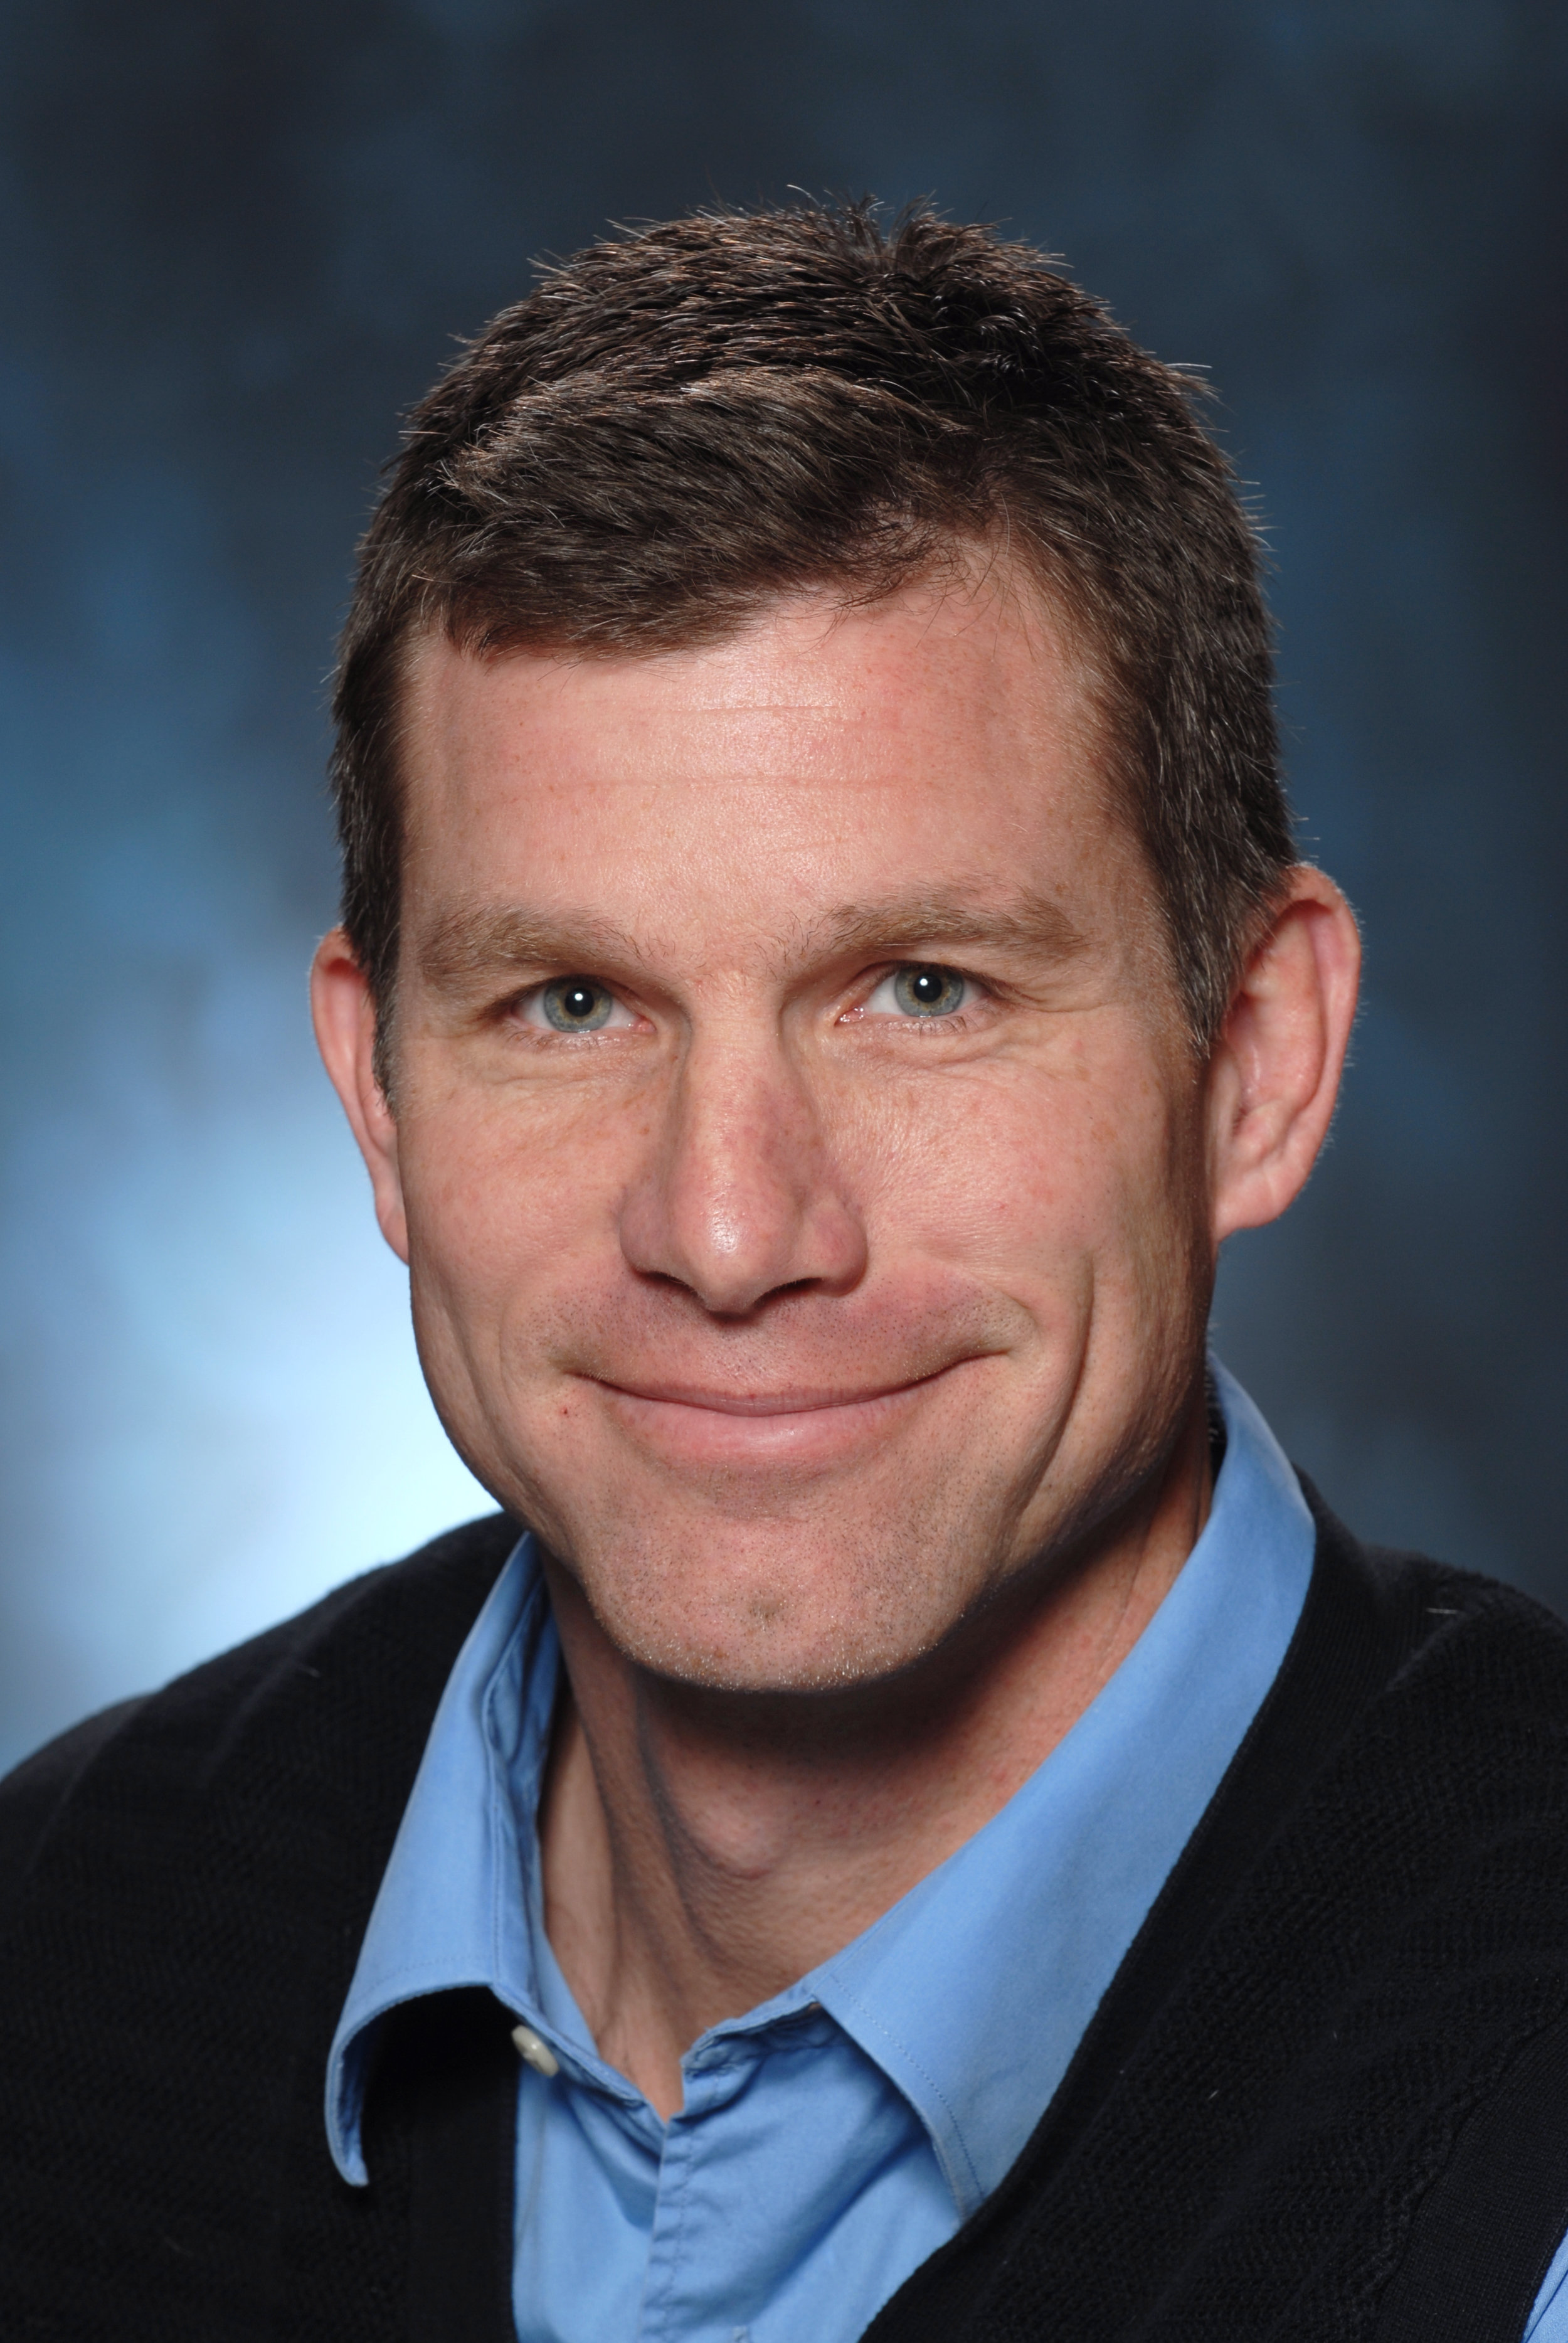 Dr. Brian Bolt professional head shot.